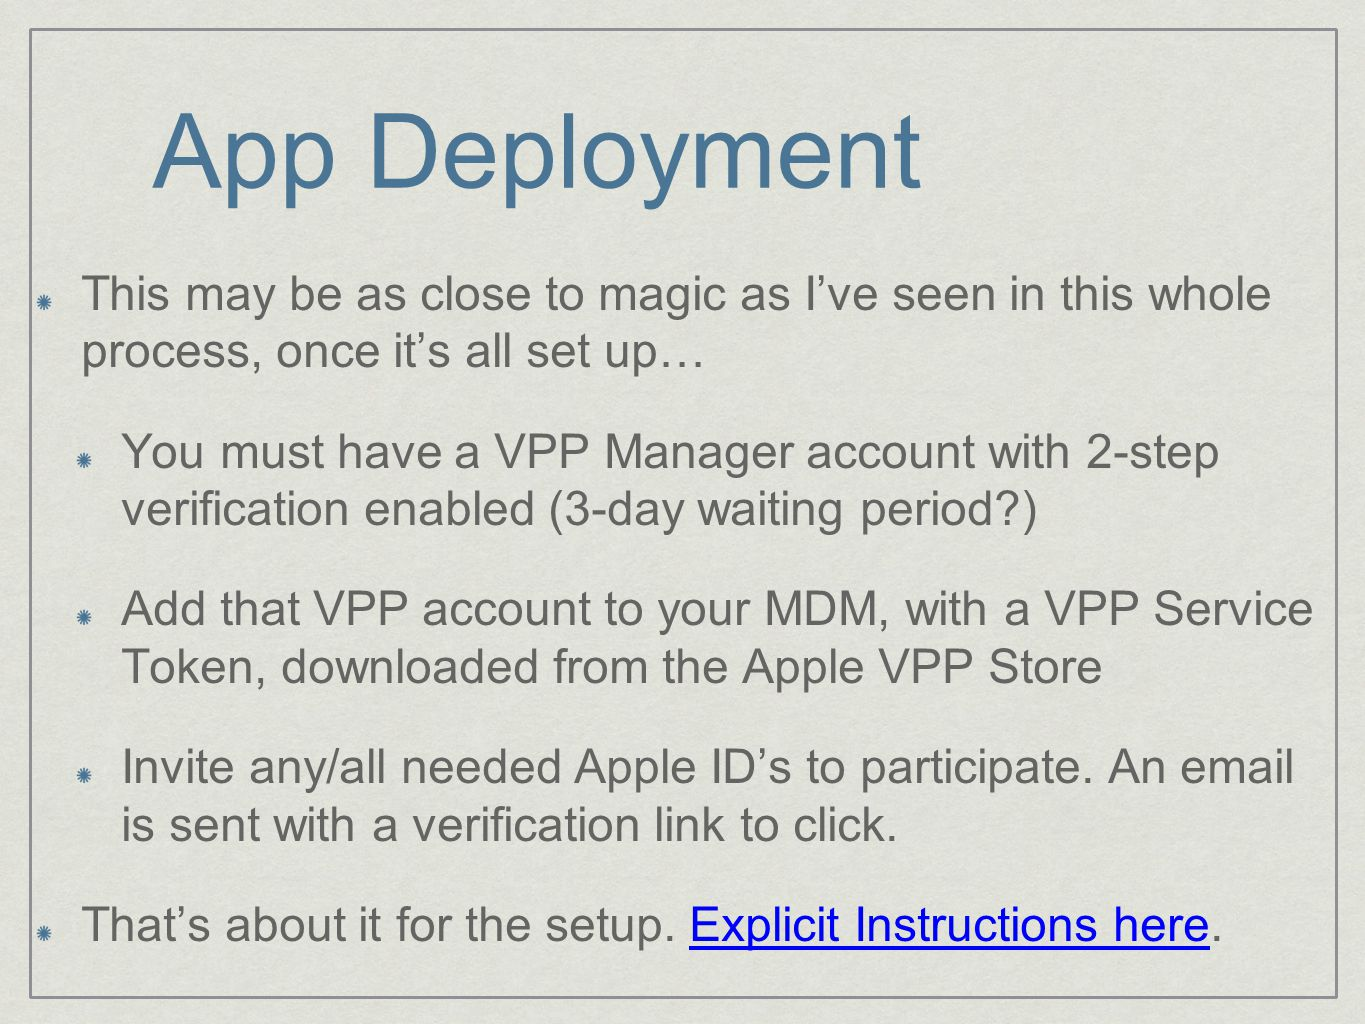 App Deployment This may be as close to magic as I've seen in this whole process, once it's all set up… You must have a VPP Manager account with 2-step verification enabled (3-day waiting period?) Add that VPP account to your MDM, with a VPP Service Token, downloaded from the Apple VPP Store Invite any/all needed Apple ID's to participate.